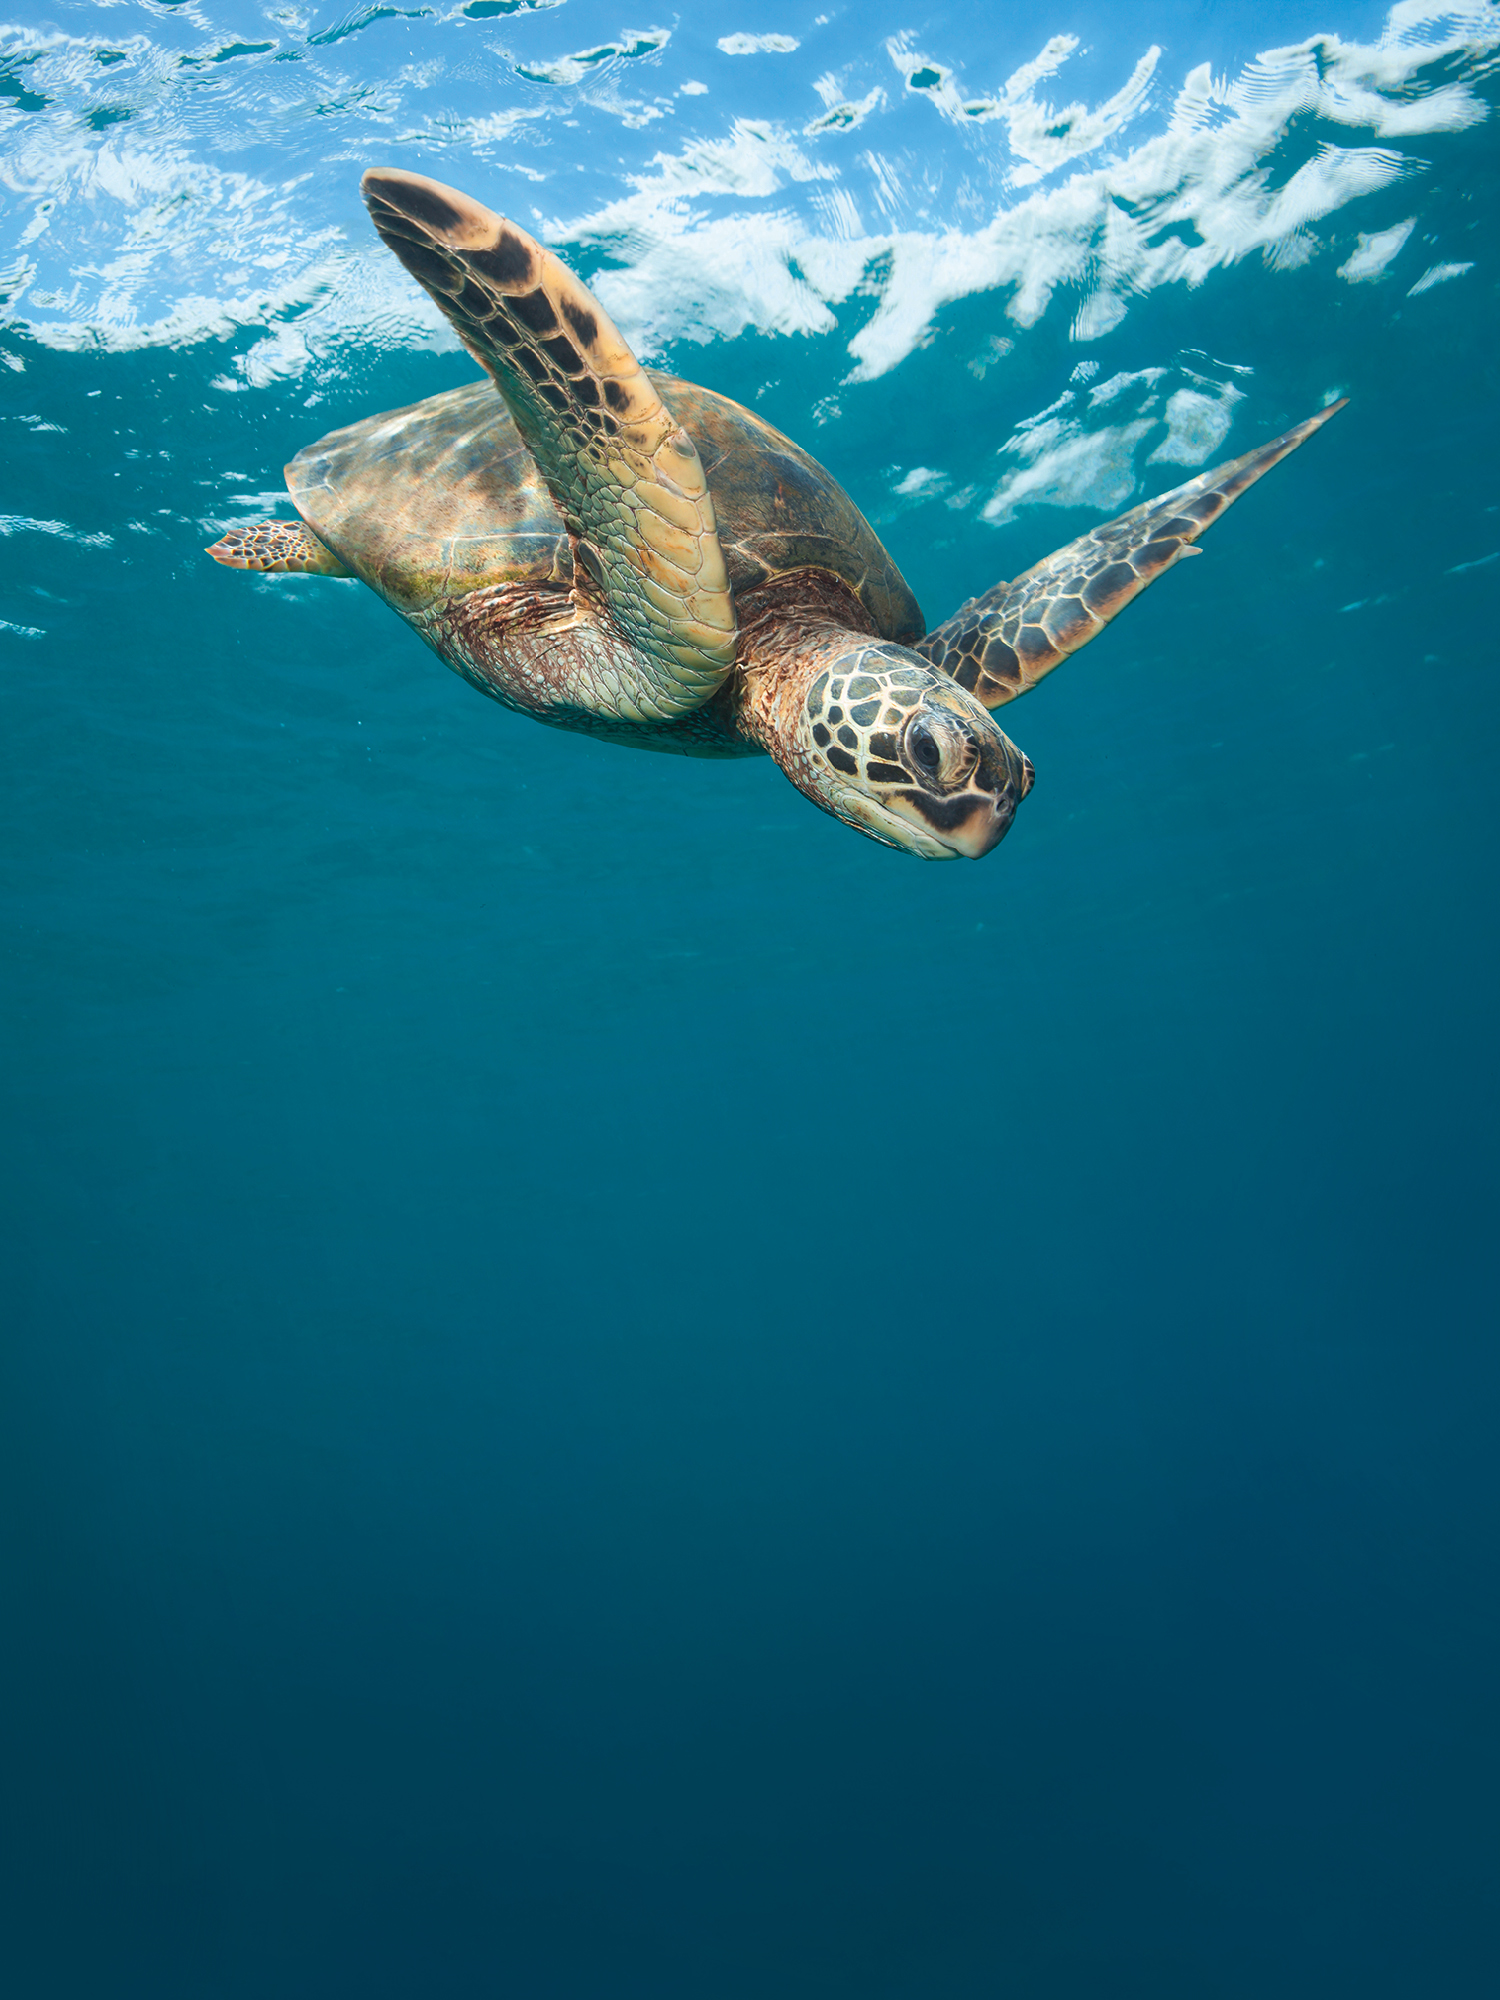 Certina supports sea turtle conservation